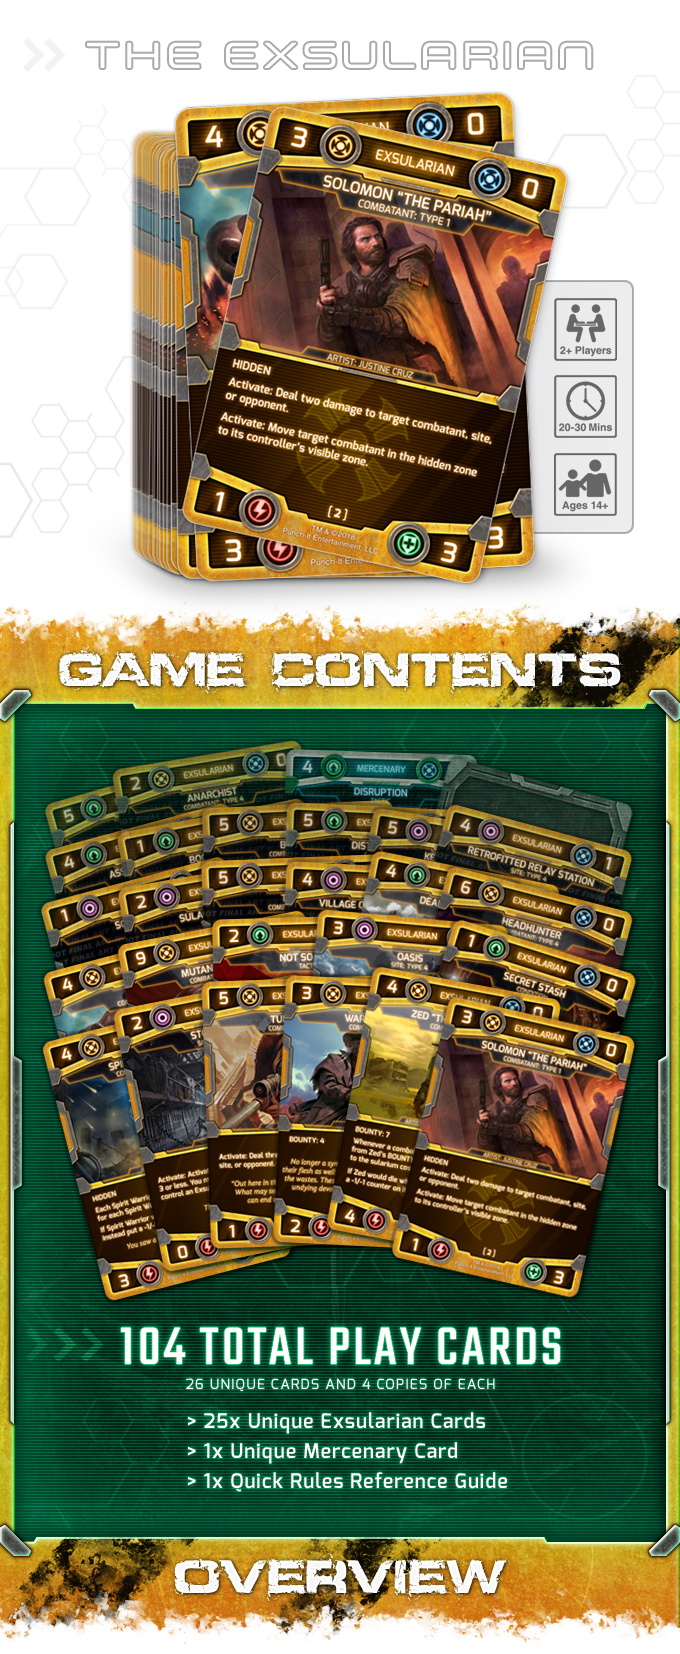 PO_GBS_Game Contents_01.jpg